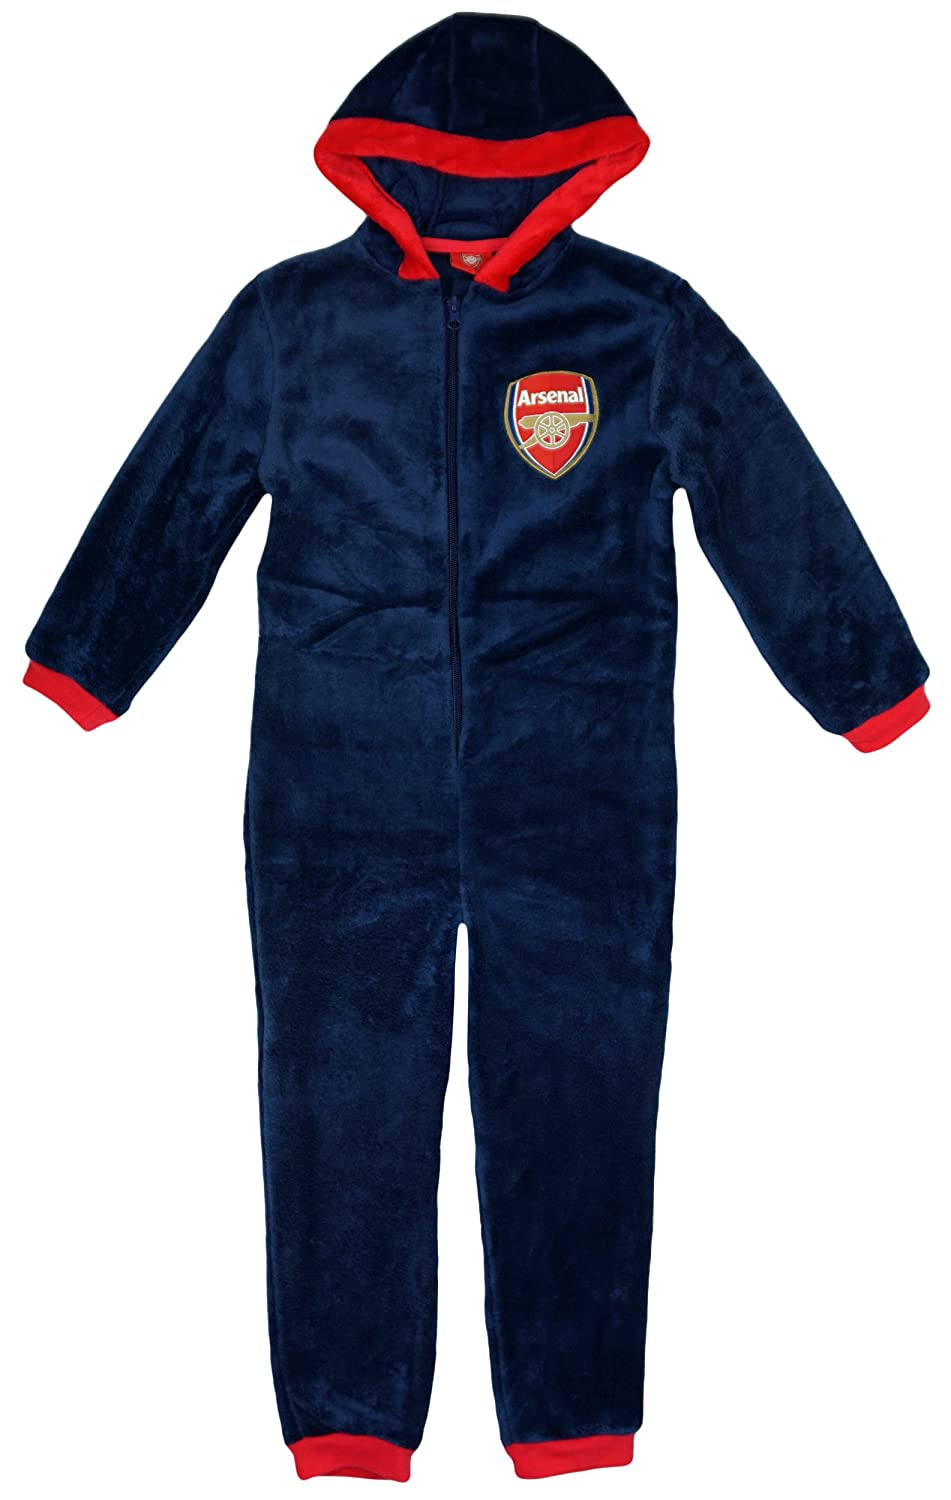 Arsenal FC Boys Official One Fleece Zipper Hooded Sleepsuit Romper Sizes From 3 To 12 Years